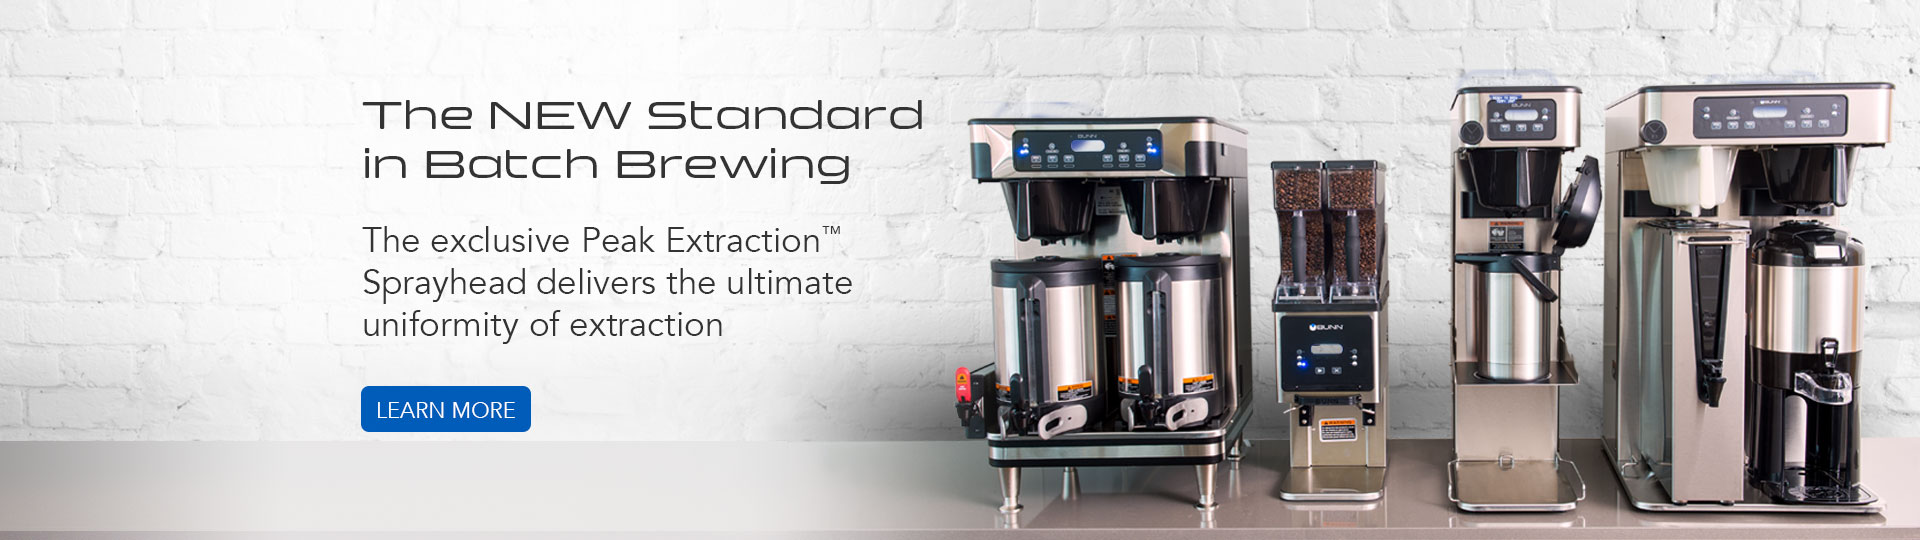 The New Standard in Batch Brewing